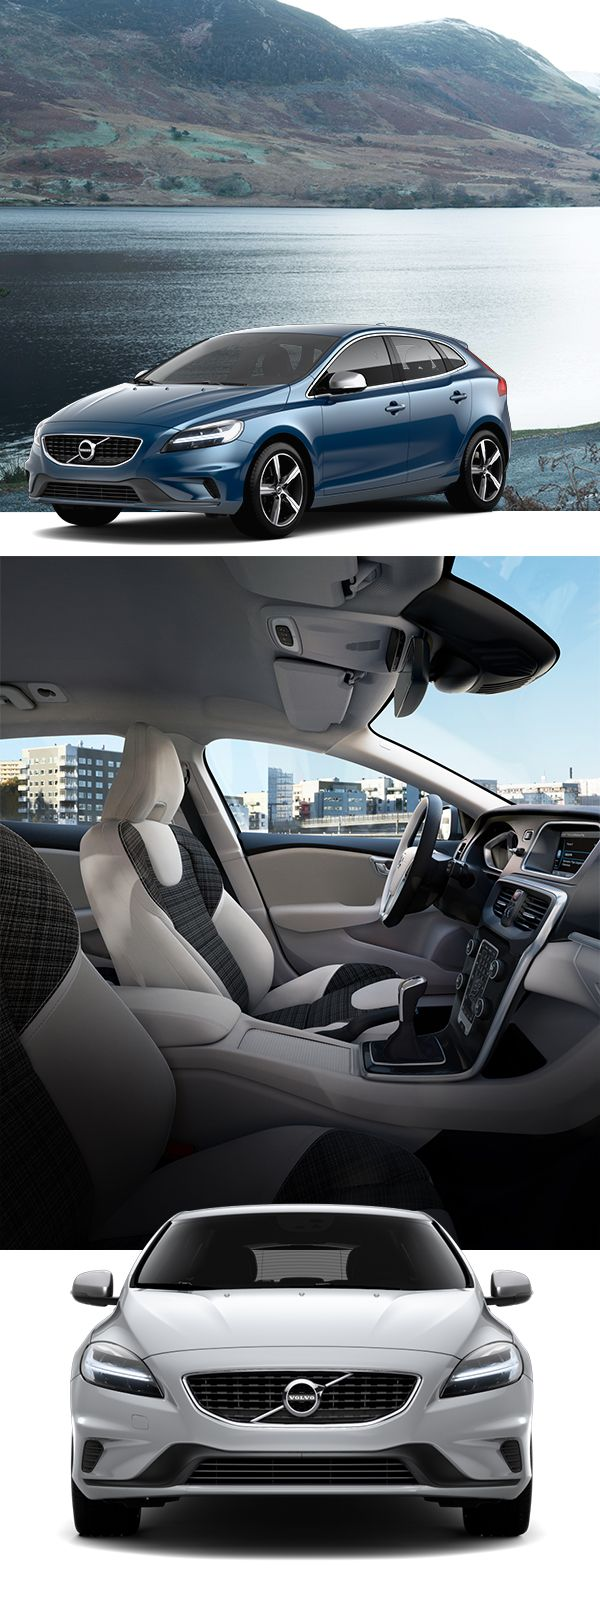 Take control with the agile volvo v40 the nimble compact hatchback that s designed to